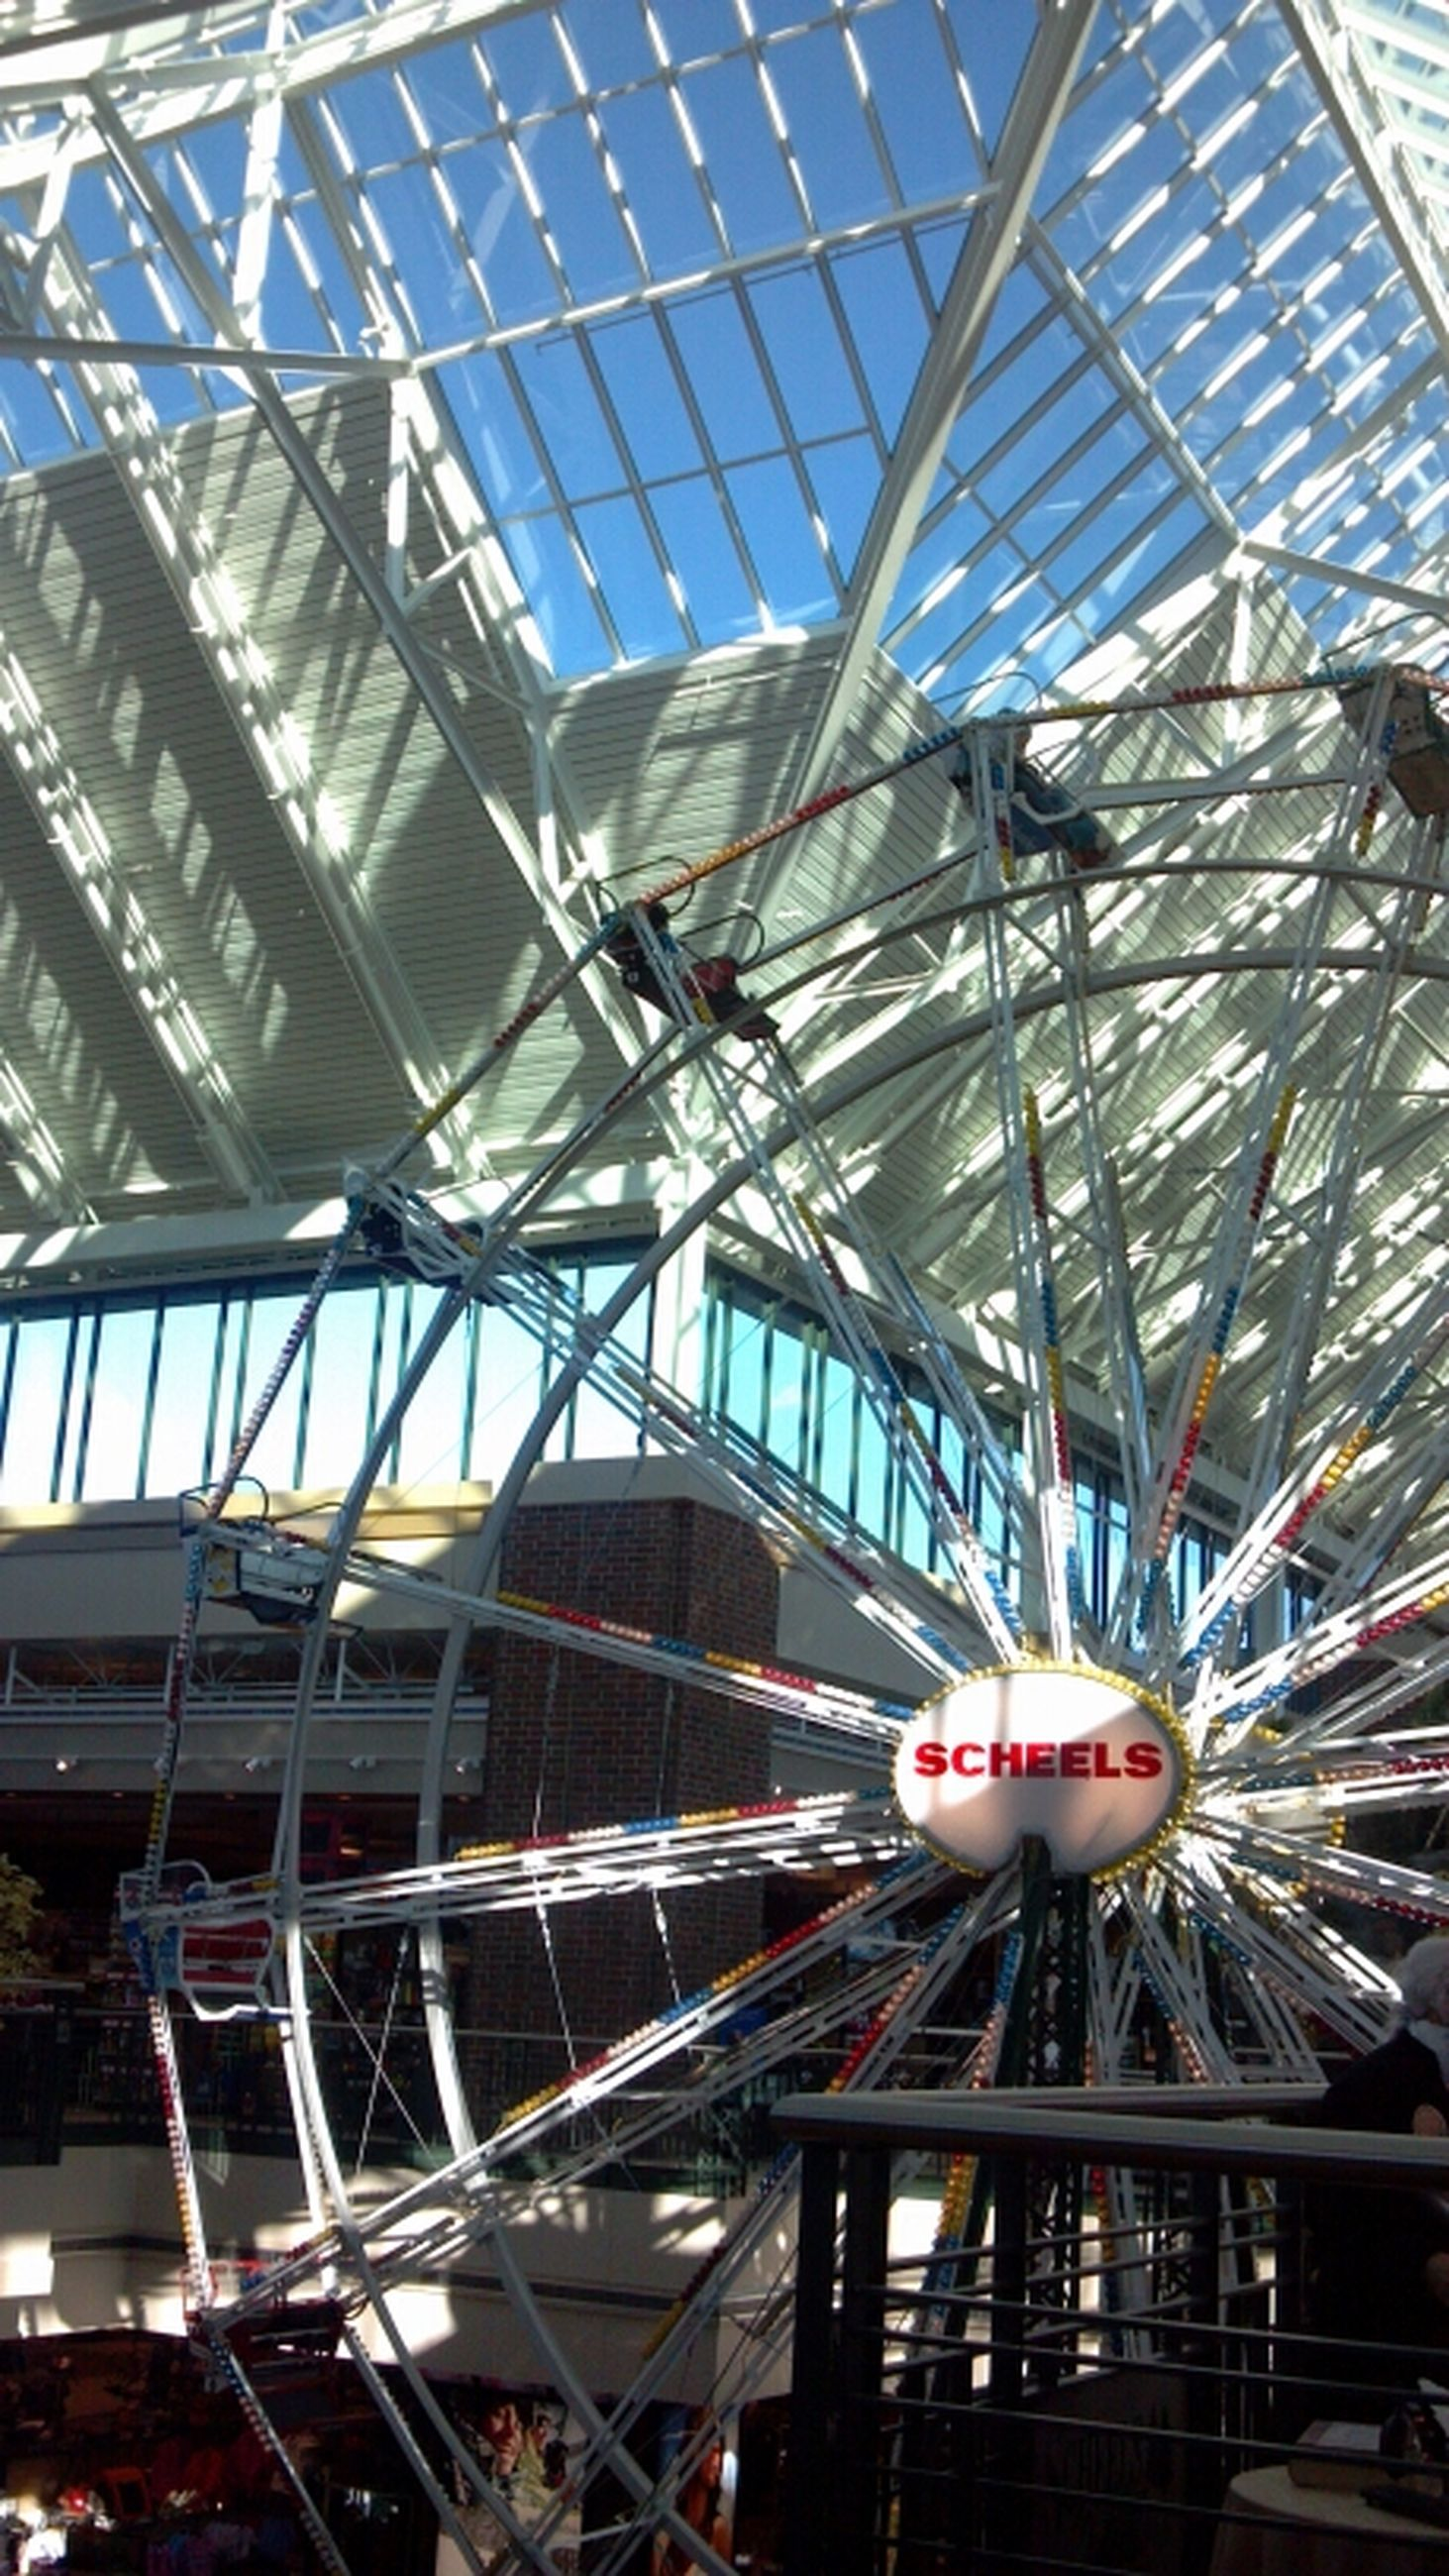 built structure, architecture, low angle view, indoors, building exterior, metal, glass - material, ceiling, amusement park, modern, city, incidental people, day, amusement park ride, ferris wheel, metallic, arts culture and entertainment, high angle view, travel, building